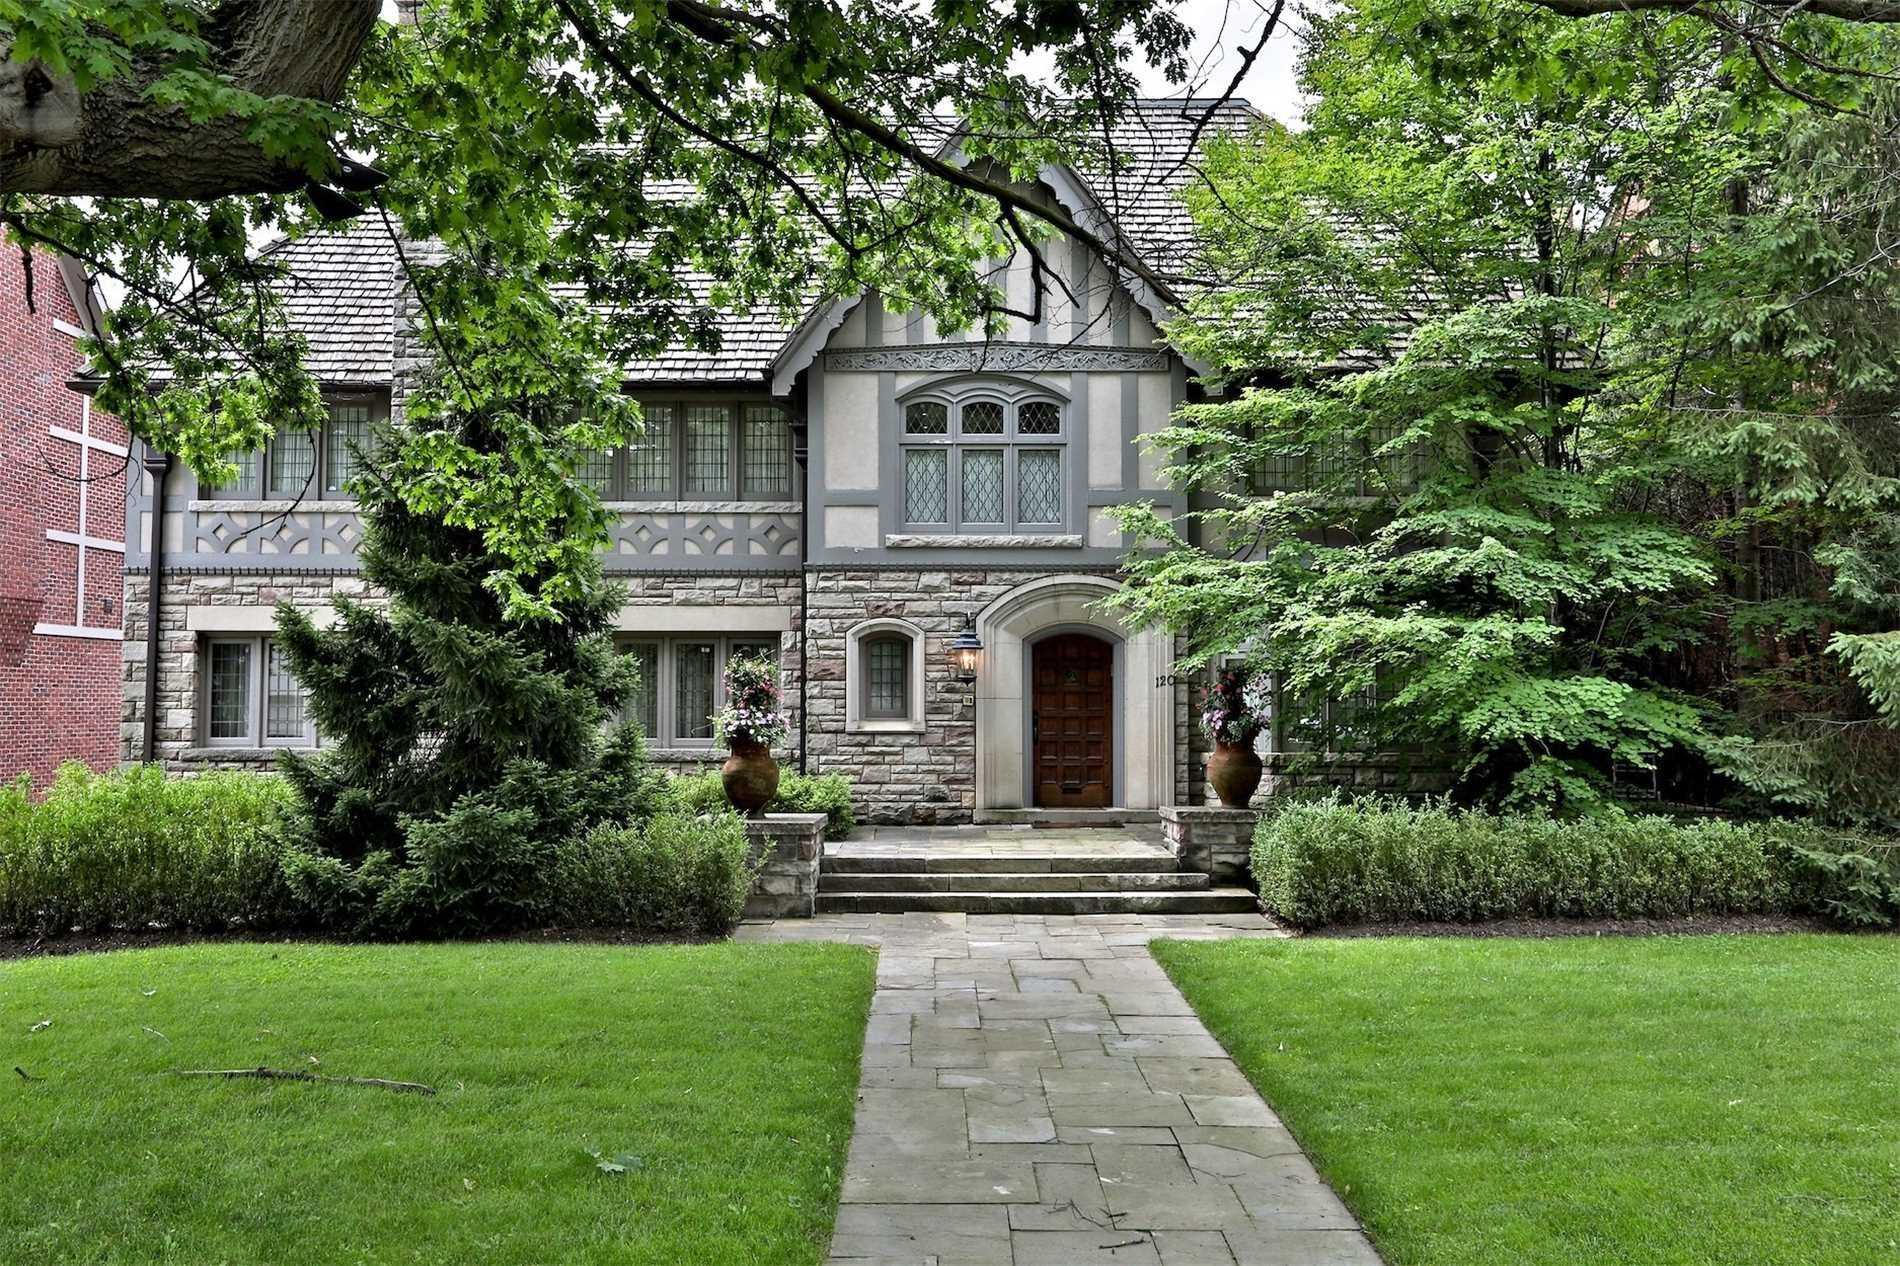 120 Old Forest Hill Rd, Toronto, Ontario M5P2R9, 5 Bedrooms Bedrooms, 10 Rooms Rooms,10 BathroomsBathrooms,Detached,For Sale,Old Forest Hill,C4802894